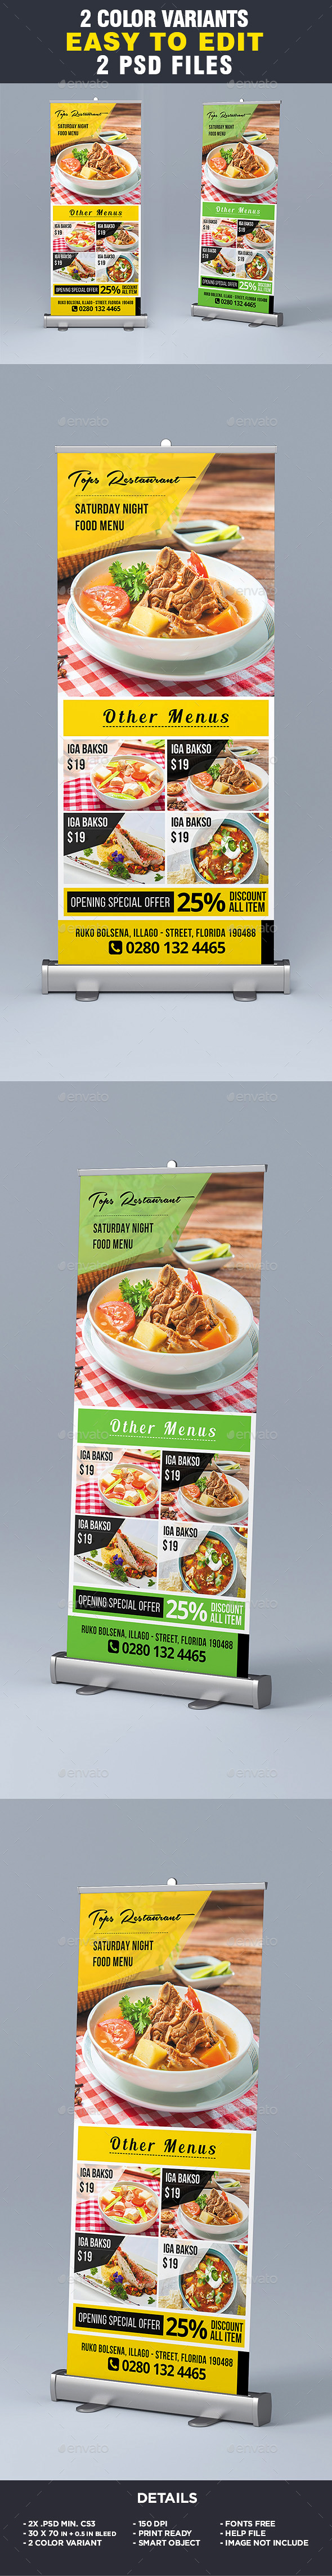 Restaurant Menu - Food Menu Roll-Up Banner